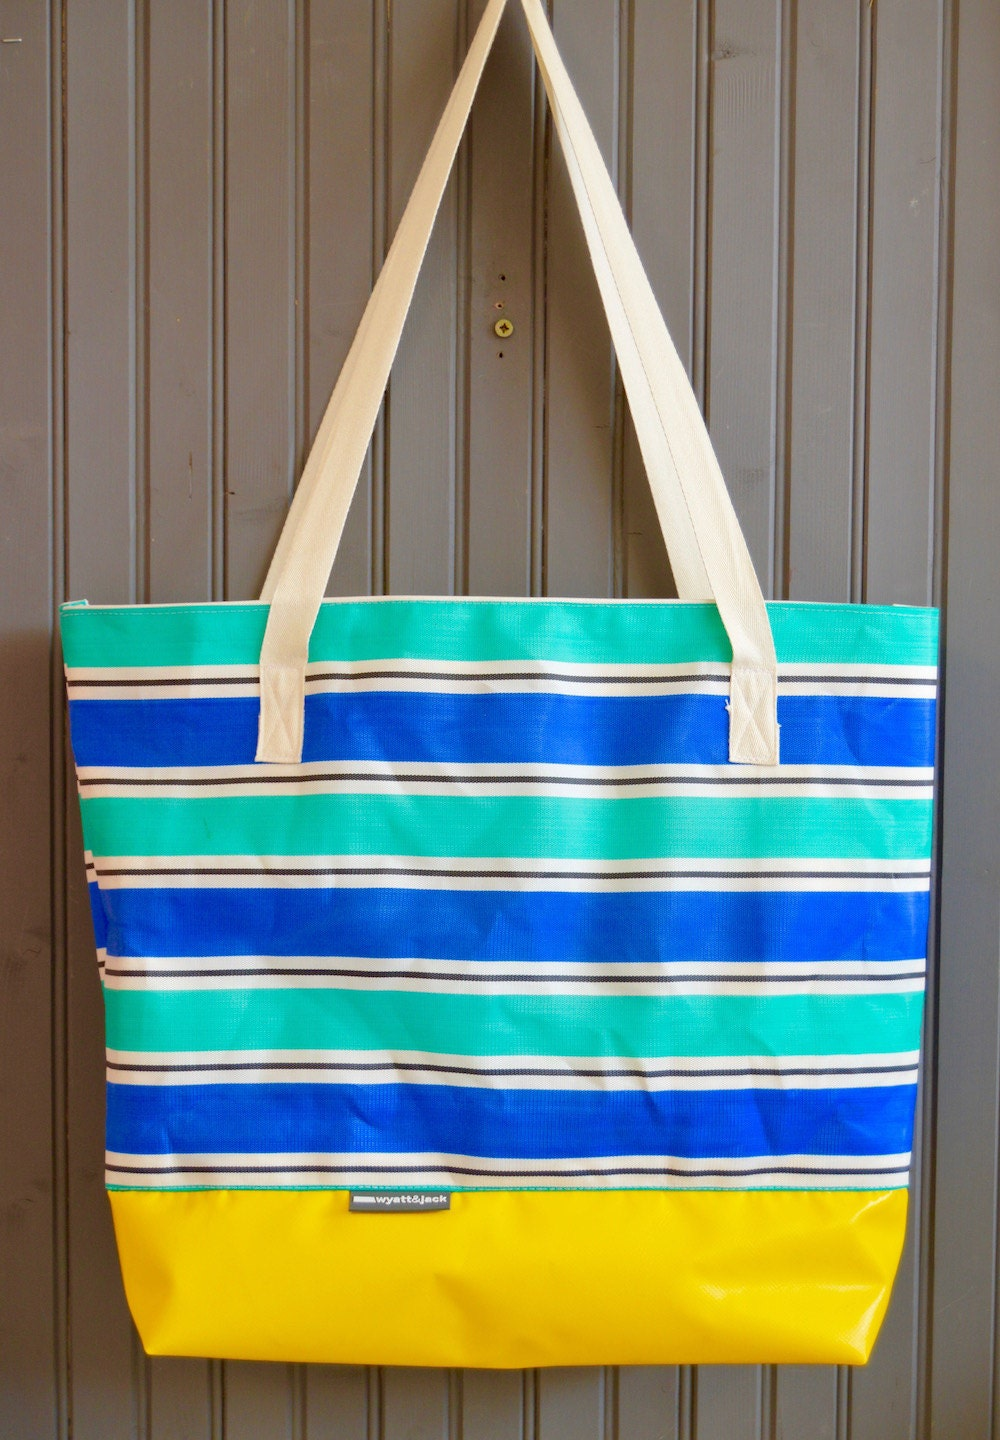 Wyatt and Jack Upcycled Blue Yellow  Turquoise Stripy Vintage Deckchair Canvas Beach Bag